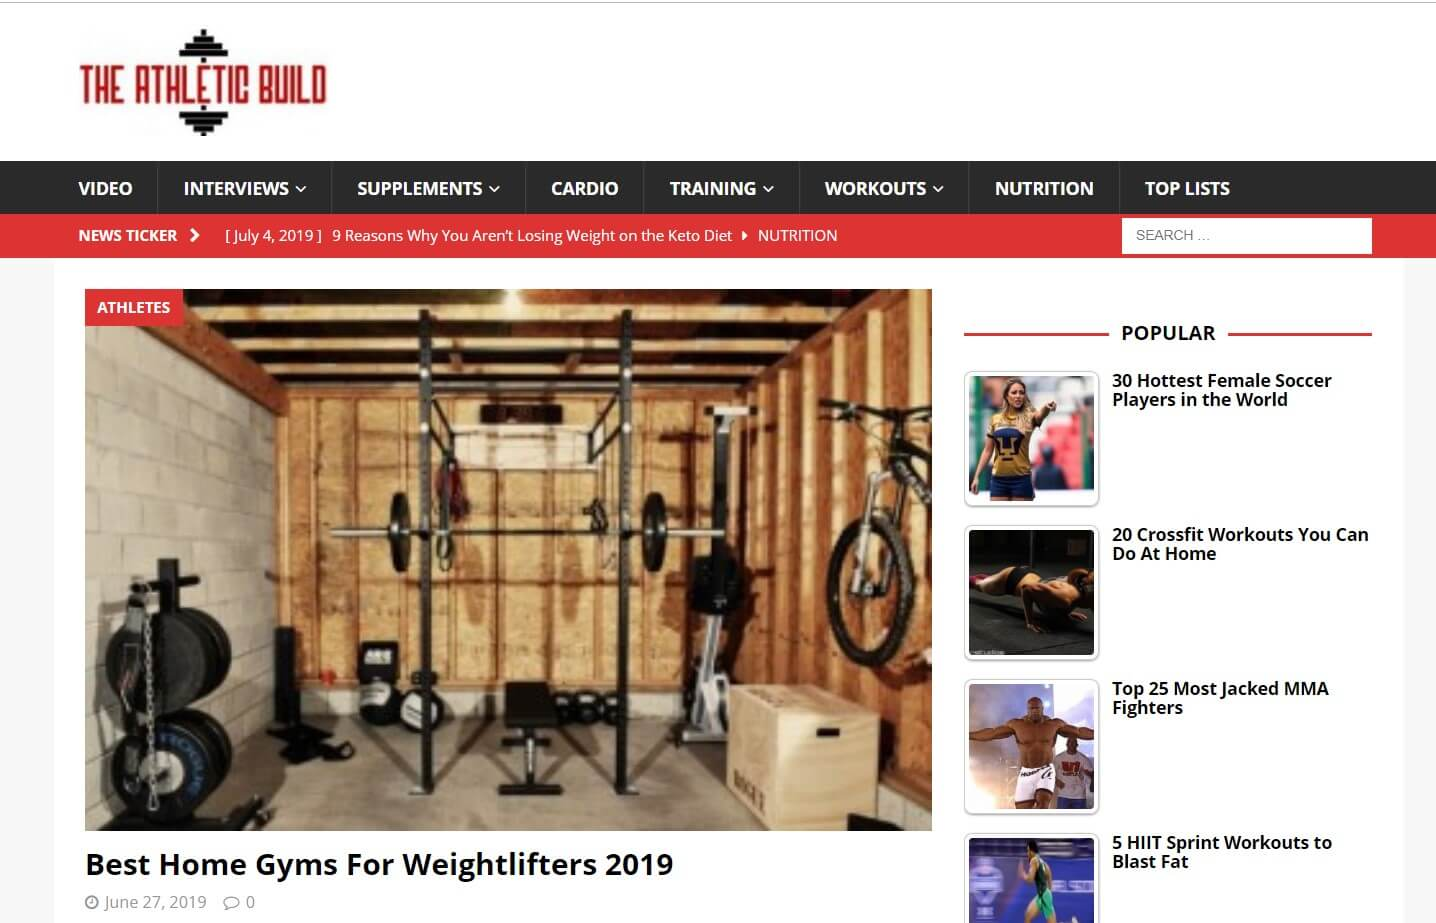 Fitness: The Athletic Build.com